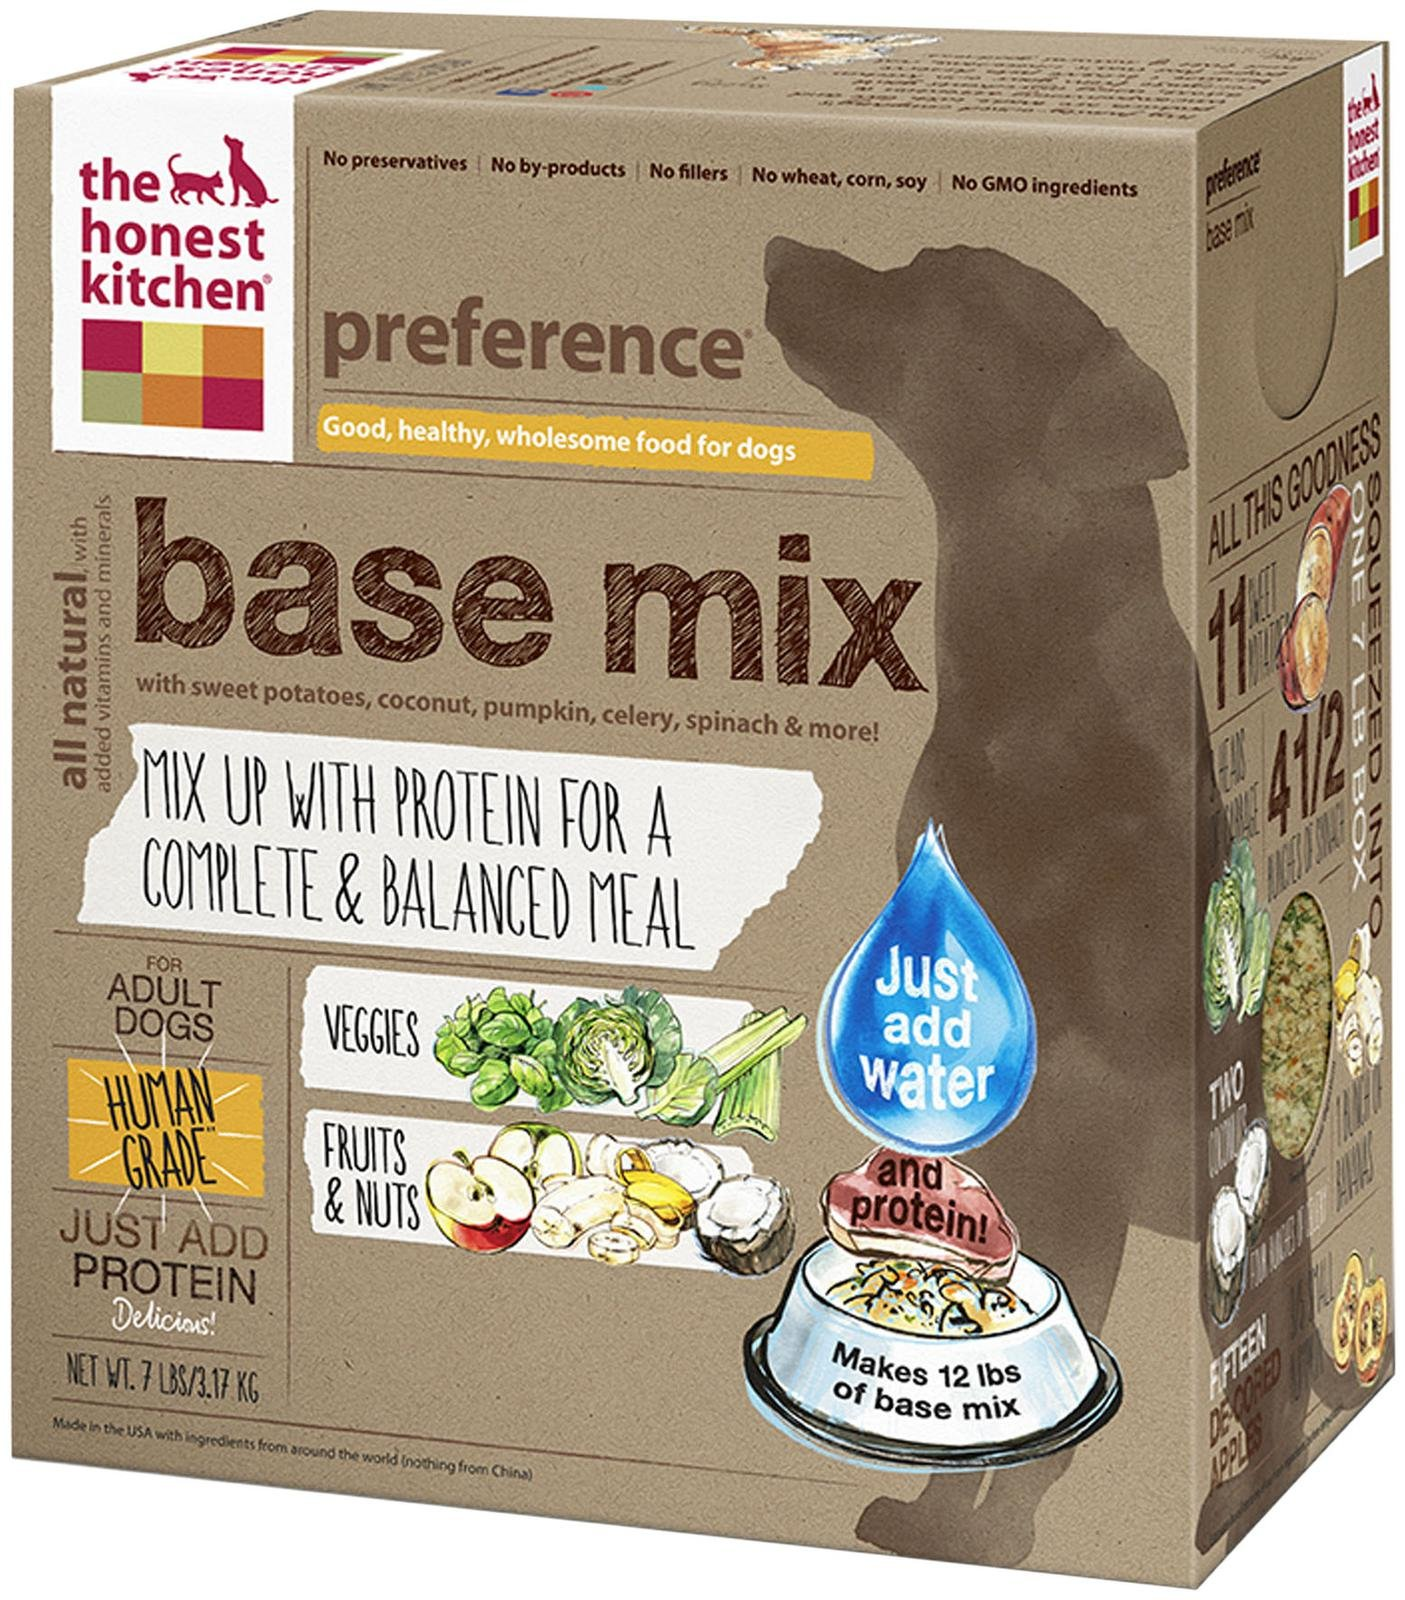 View All Honest Kitchen's Dog Food